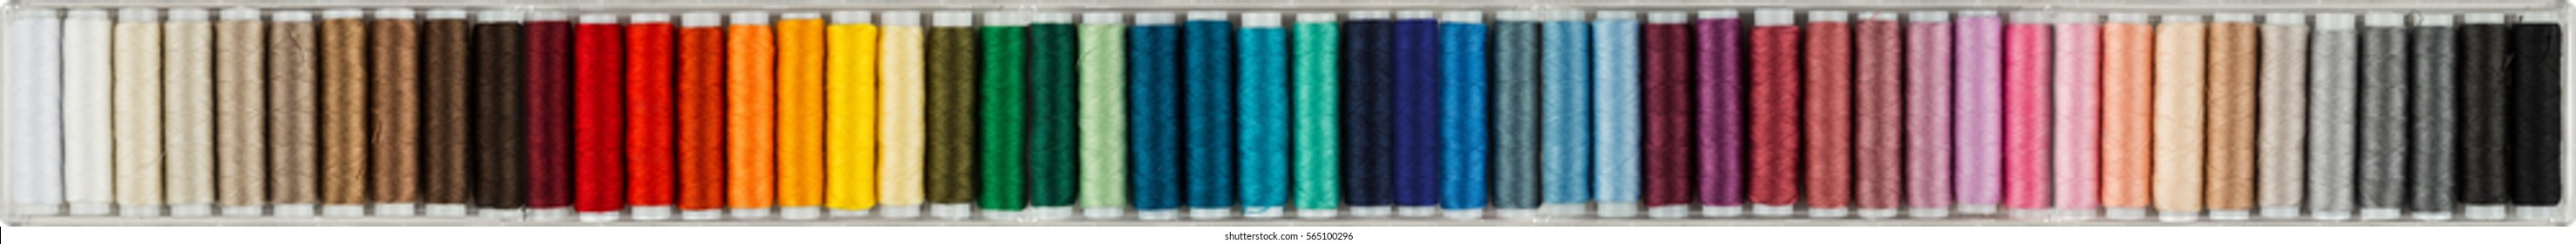 wide panorama background with colorful sewing cottons spools isolated on white background